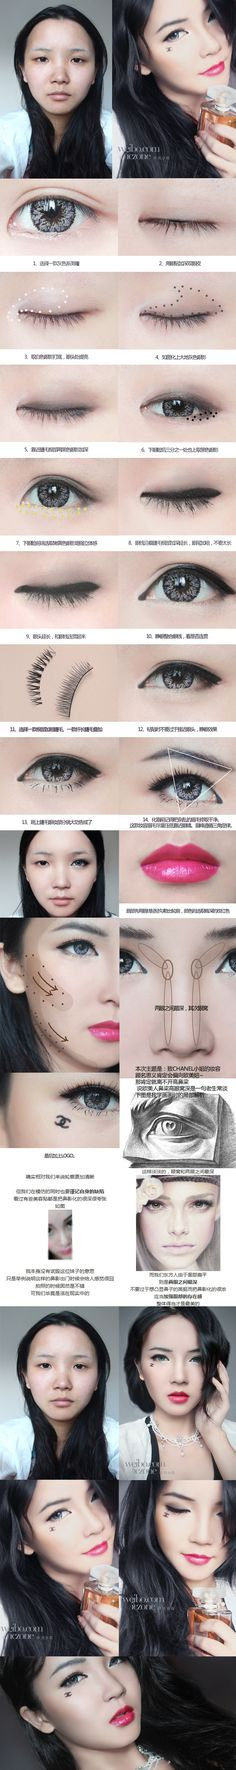 Wow, the power of makeup she has porcelain skin after!!!